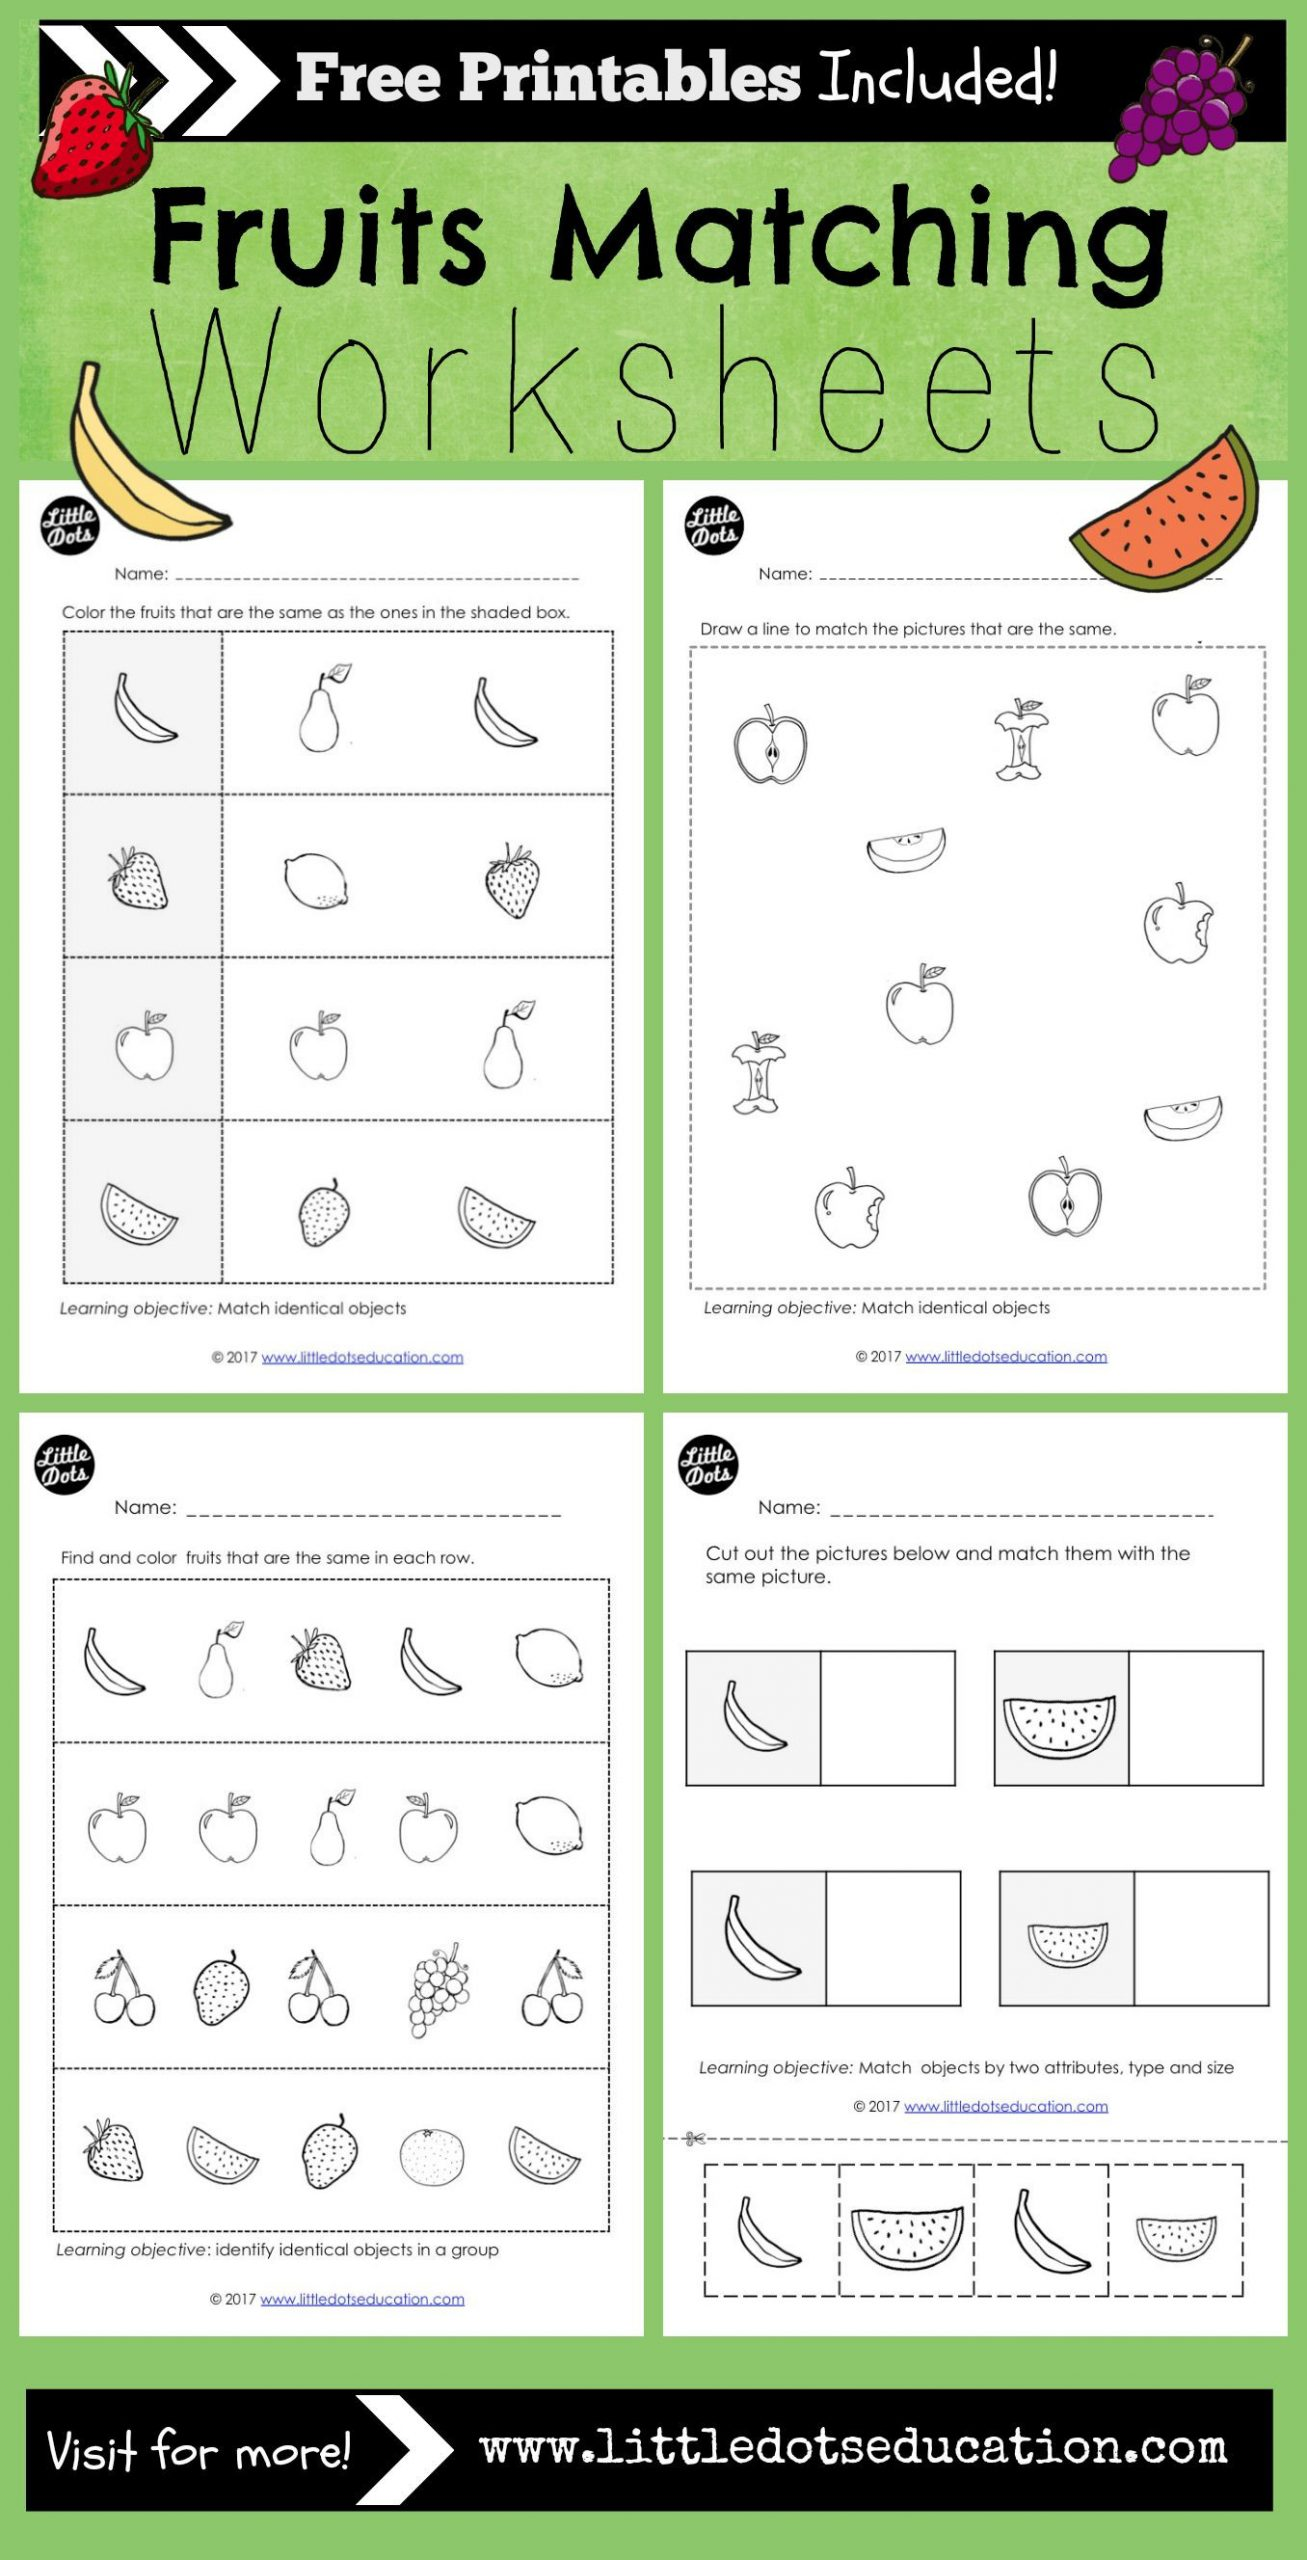 Theme Worksheets for Middle School Preschool Fruits theme Matching Worksheets and Activities